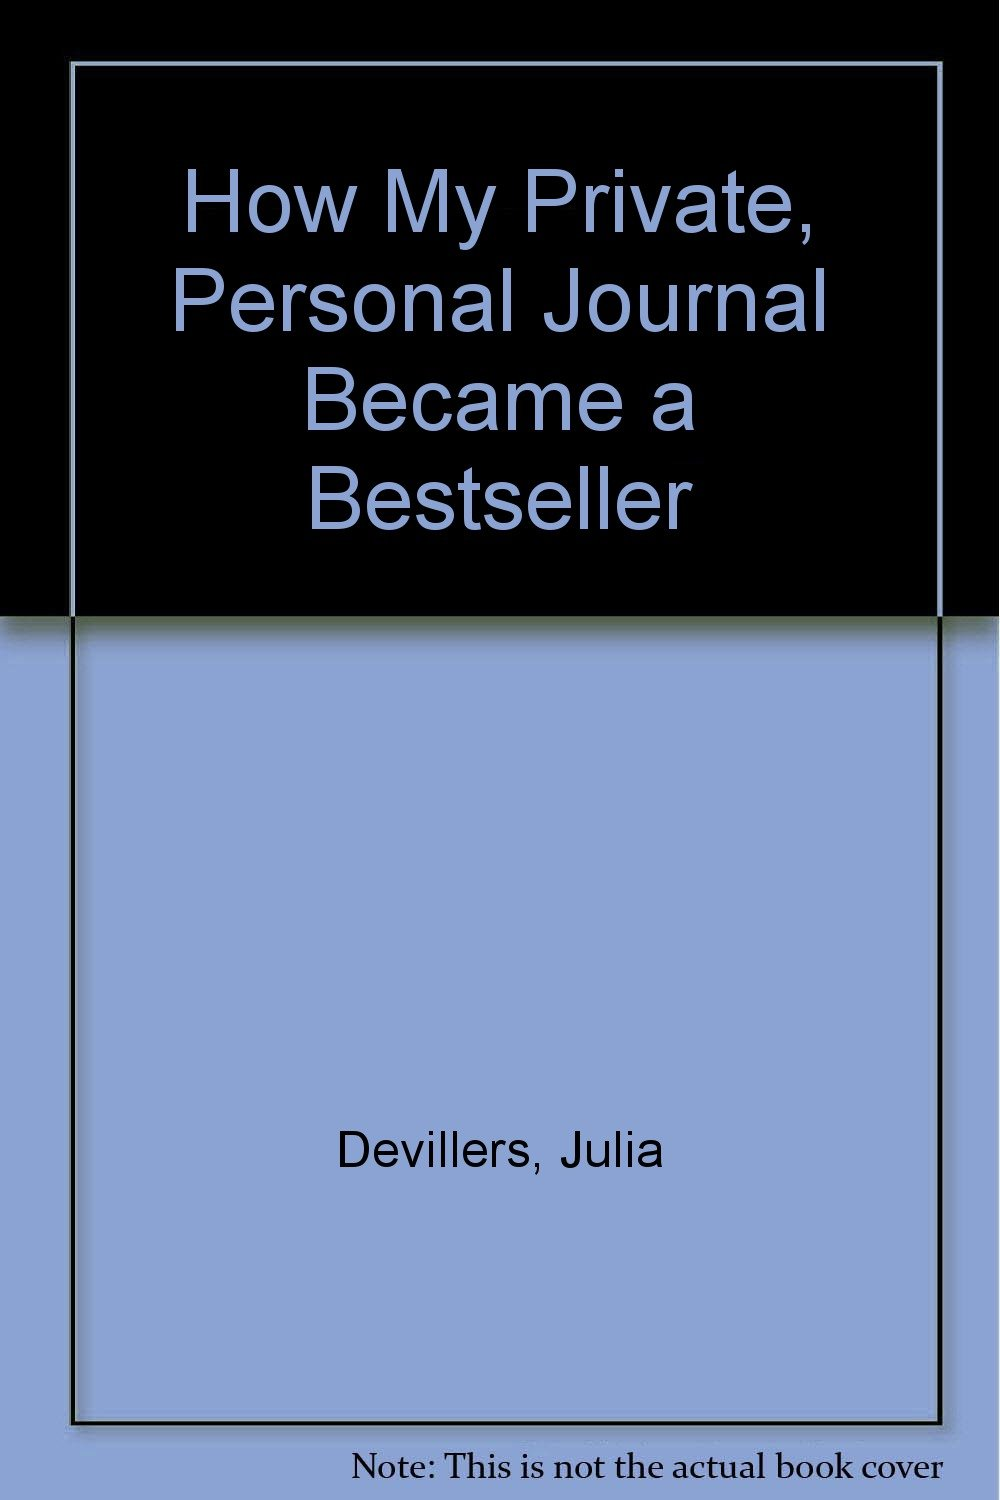 amazon how my private personal journal became a bestseller